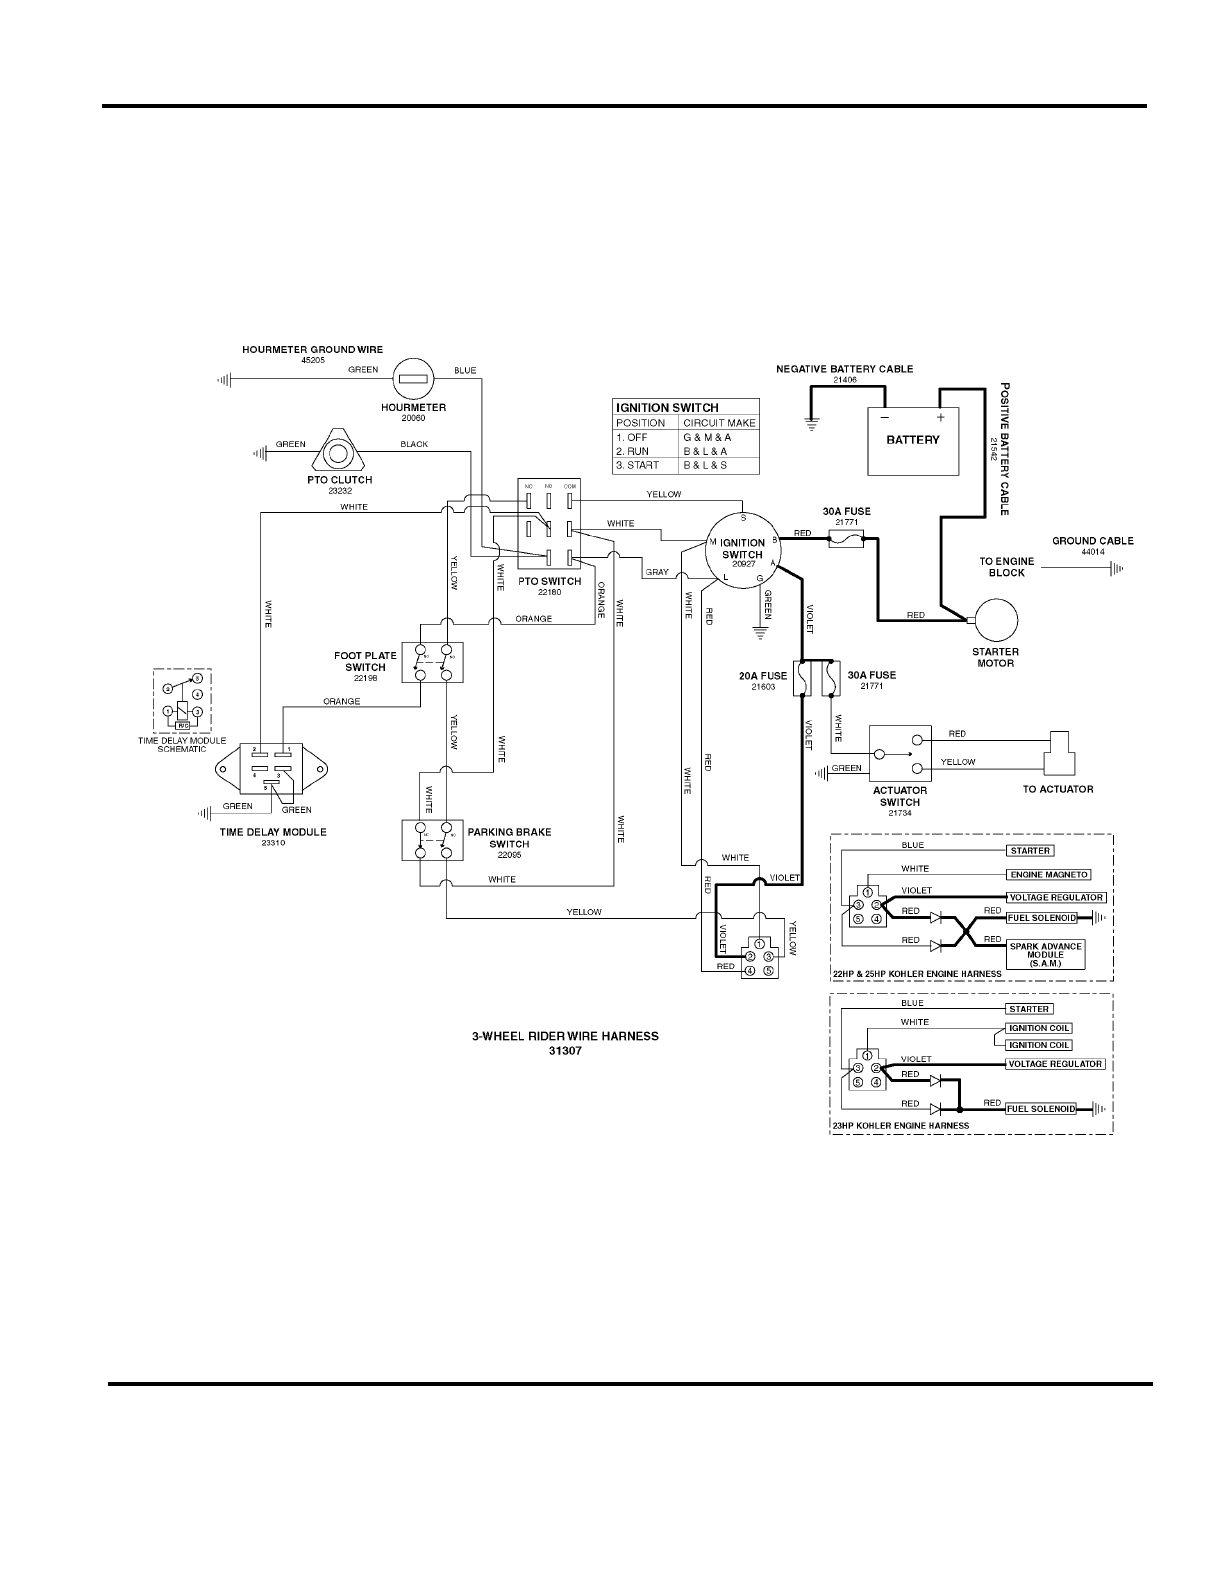 2 Cylinder Wisconsin Engine Tjd furthermore Snapper Riding Mower Wiring Diagram besides Toro Lawn Mower Schematic in addition Guideline For Rotary Lawn Mower Parts additionally 81ugv Color Code Ignition Switch. on yazoo mower wiring diagram